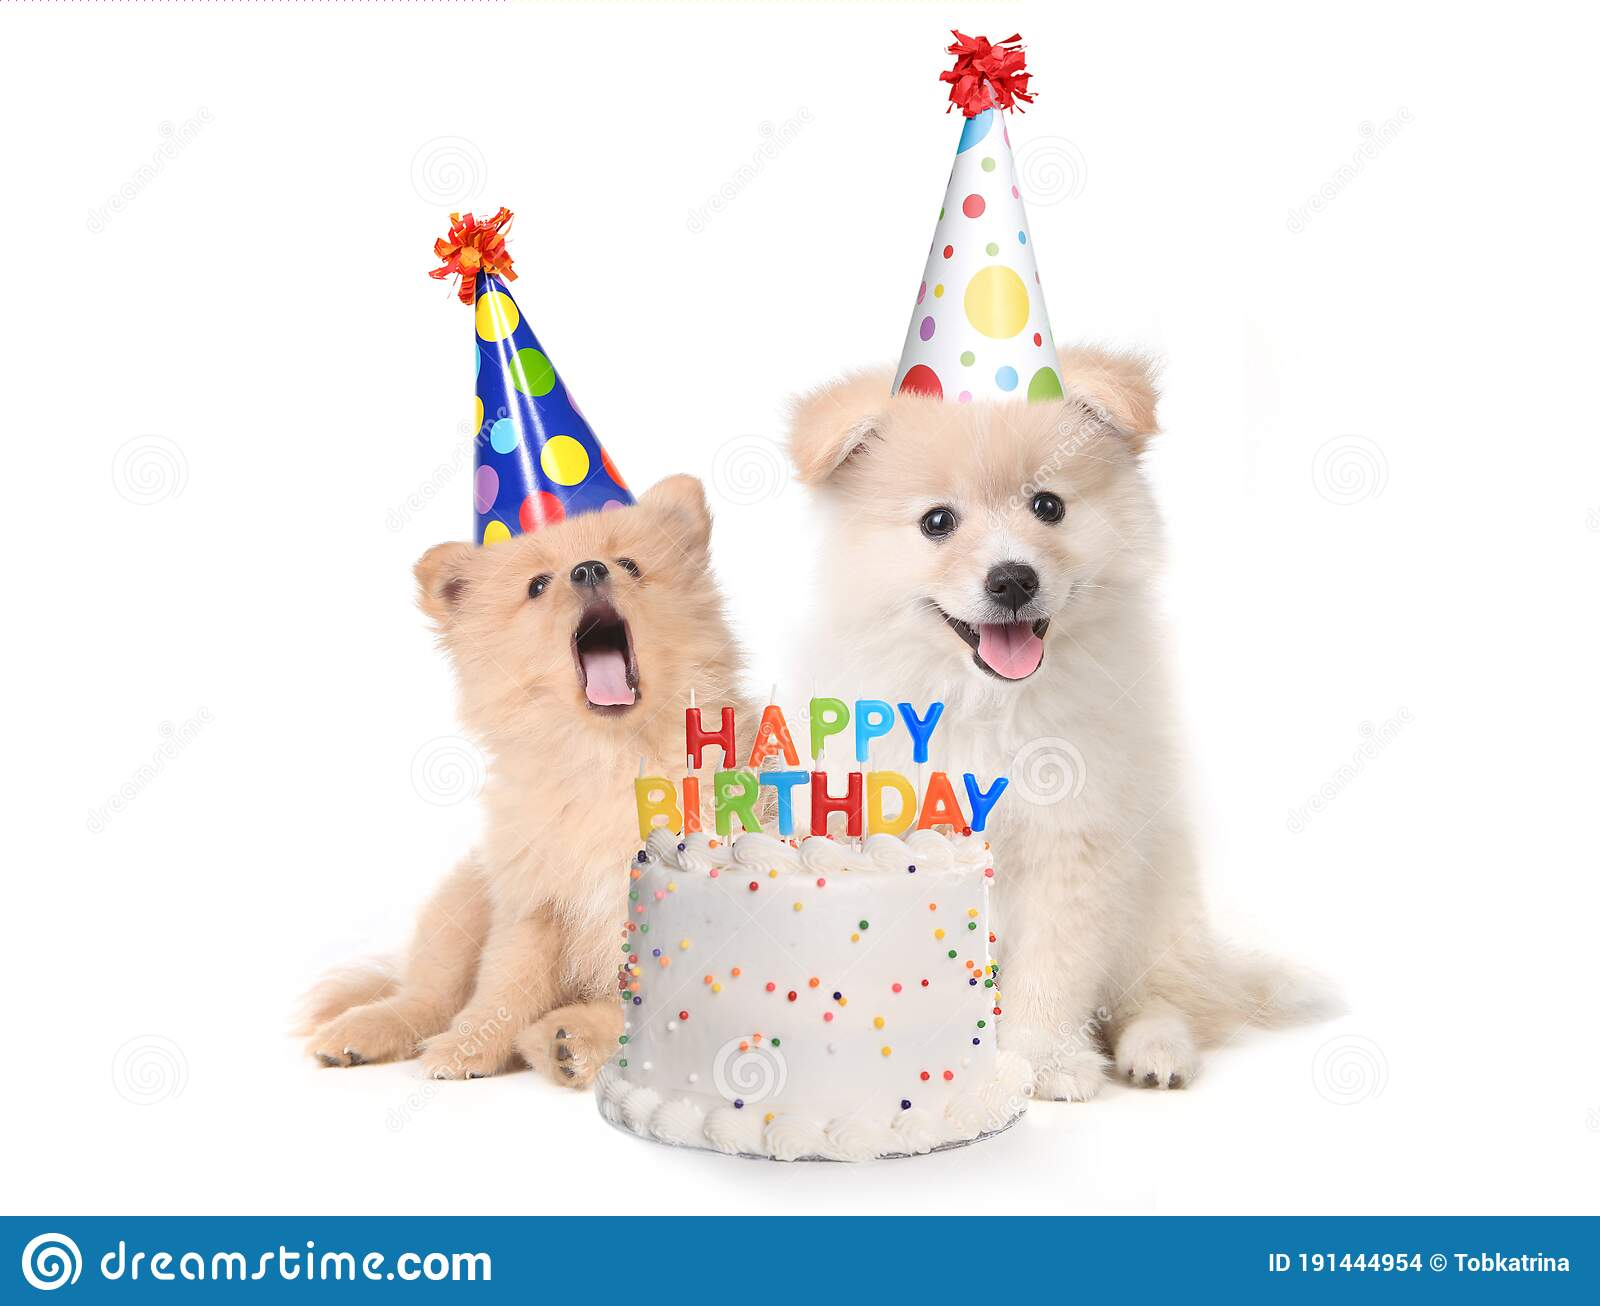 Puppies Singing Happy Birthday Song With Cake Stock Photo Image Of Hound Mammal 191444954